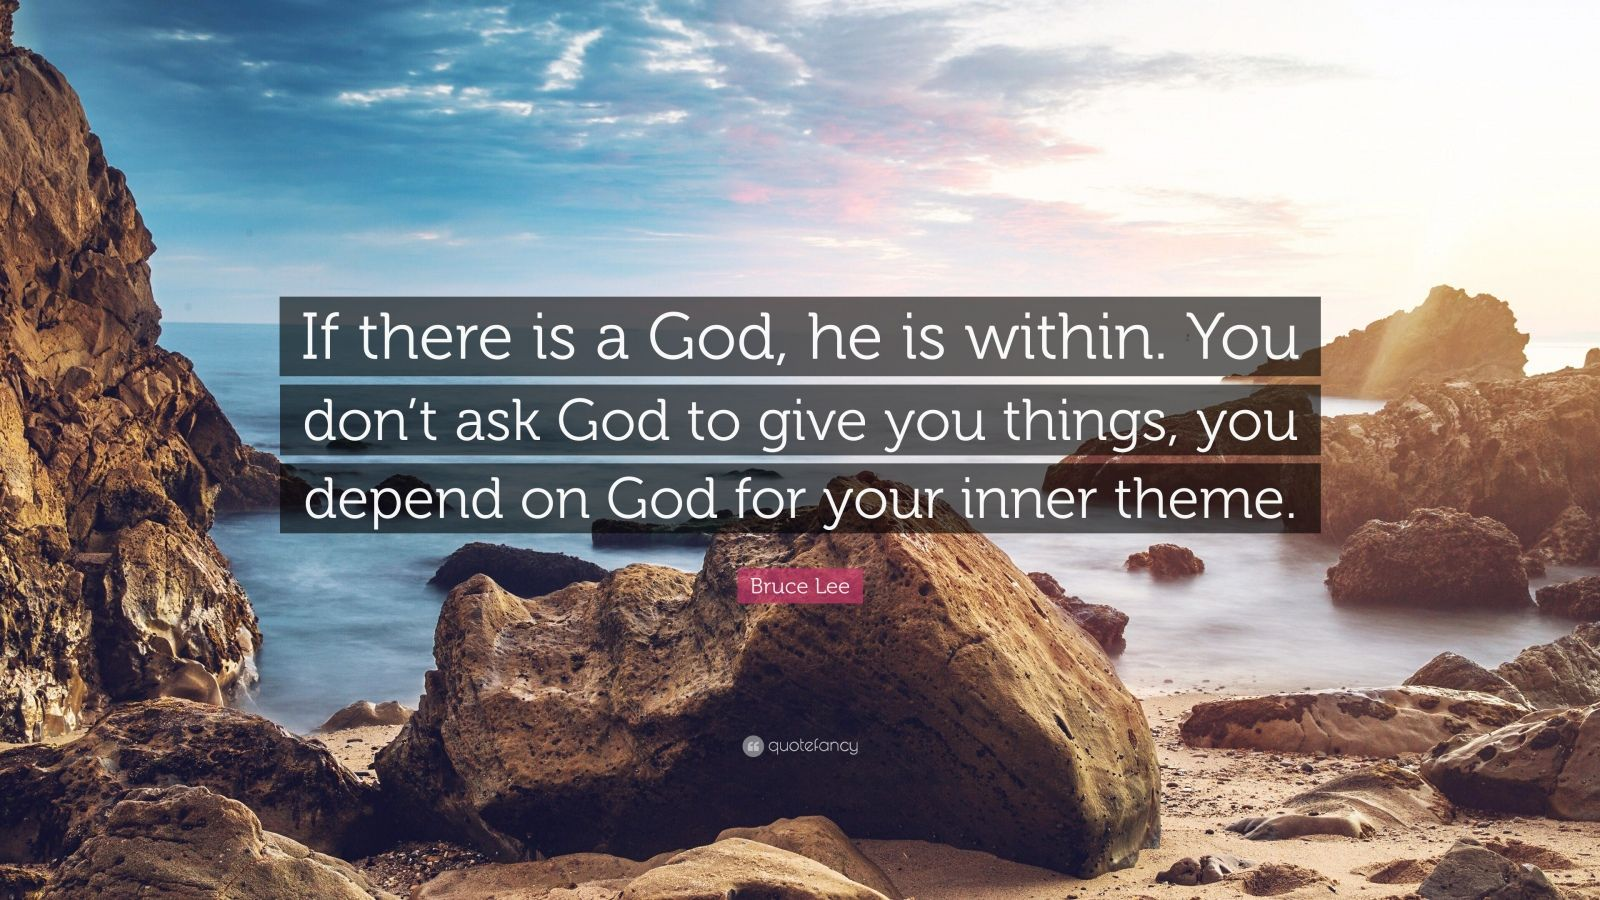 """Bruce Lee Quote: """"If there is a God, he is within. You don't ask God to give you things, you depend on God for your inner theme."""""""